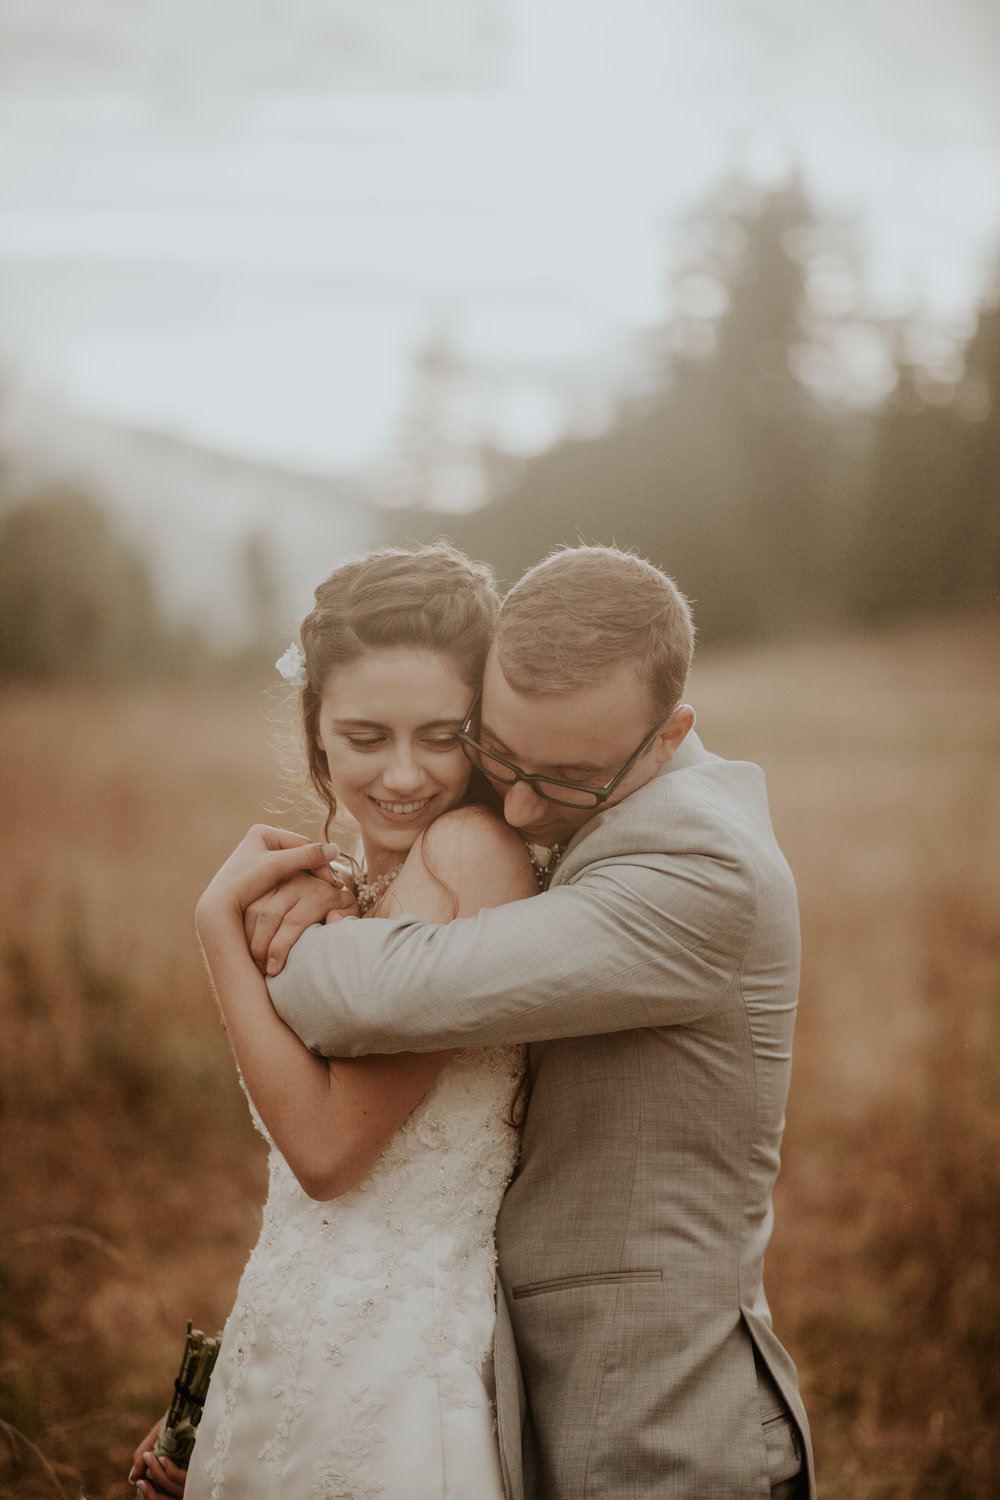 Port-Angeles-elopement-wedding-pnw-olympic-peninsula-photographer-portrait-kayladawnphoto-kayla-dawn-photography-olympic-national-park-102.jpg